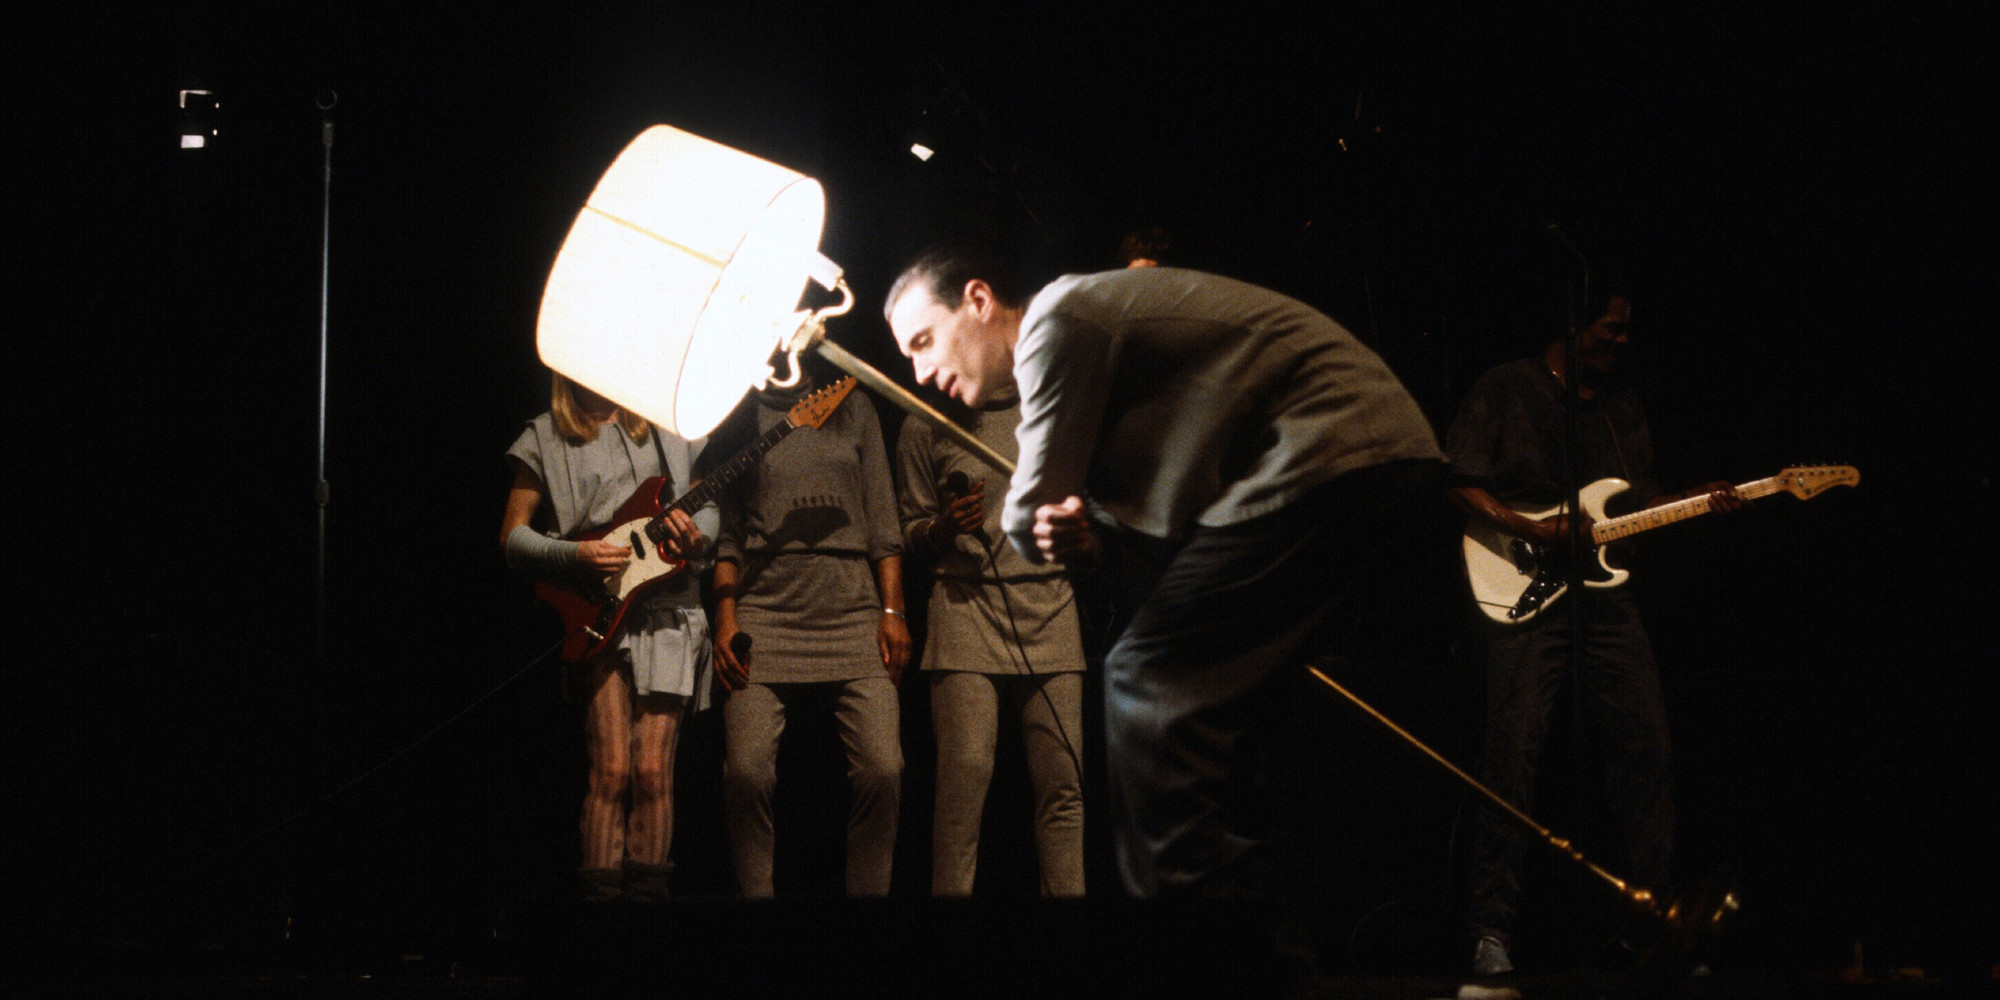 Stop Making Sense. 1984. USA. Directed by Jonathan Demme. © Cinecom. Courtesy Photofest